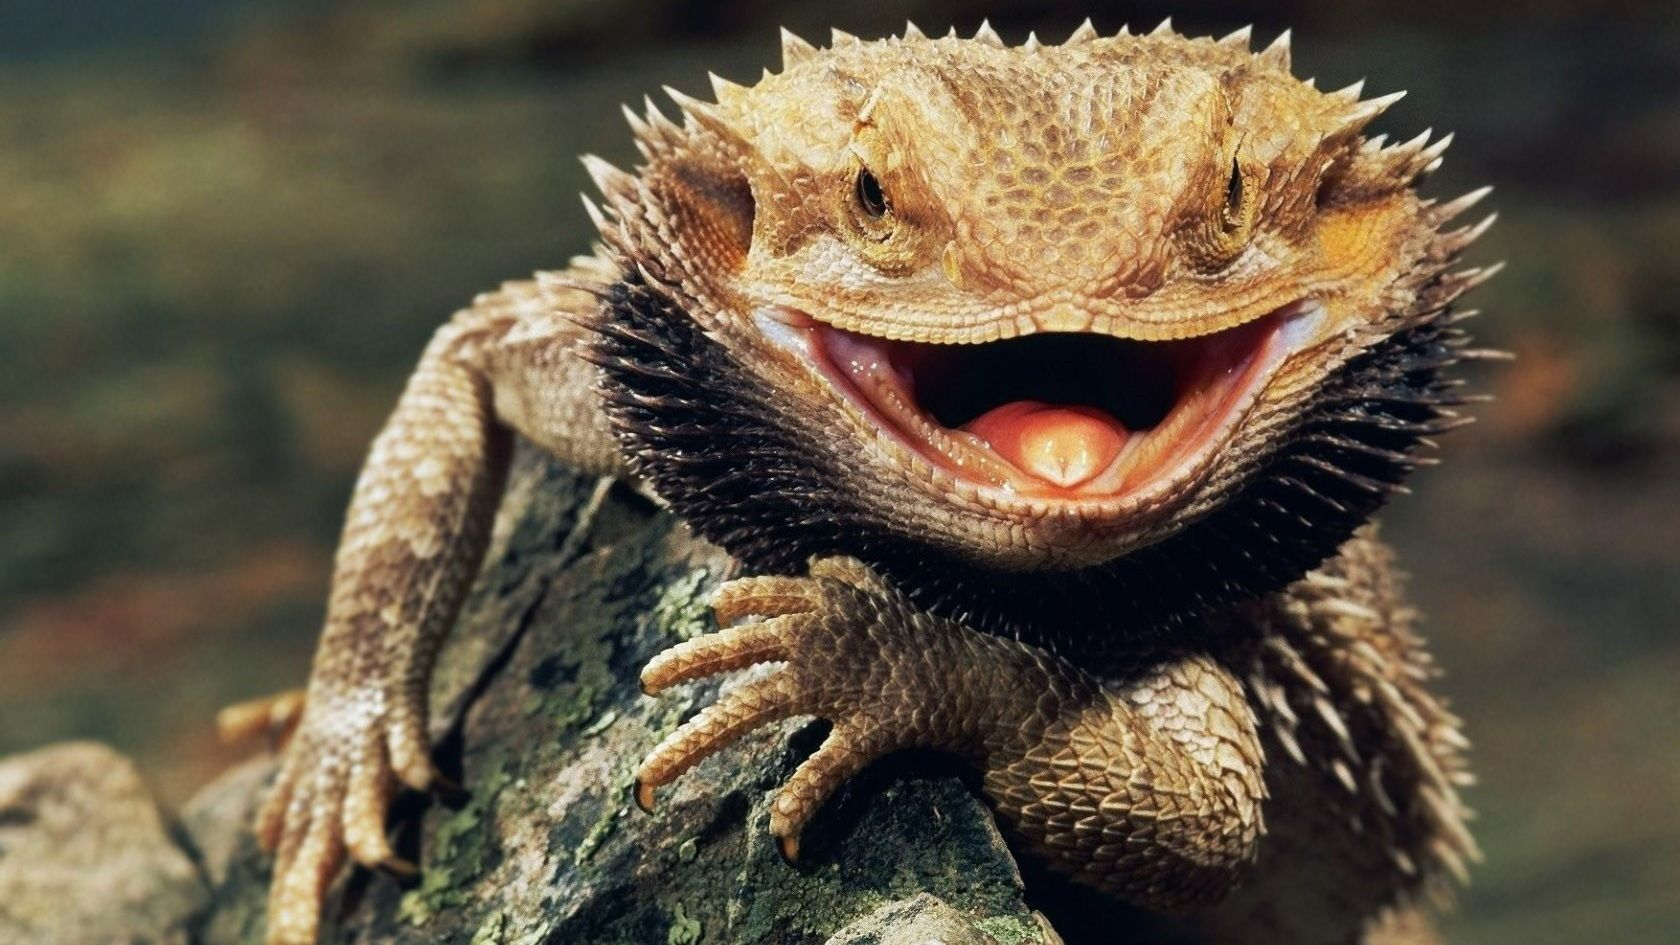 Bearded Dragon Wallpapers Wallpaper Cave Bearded Dragon Habitat Bearded Dragon Care Pet Lizards